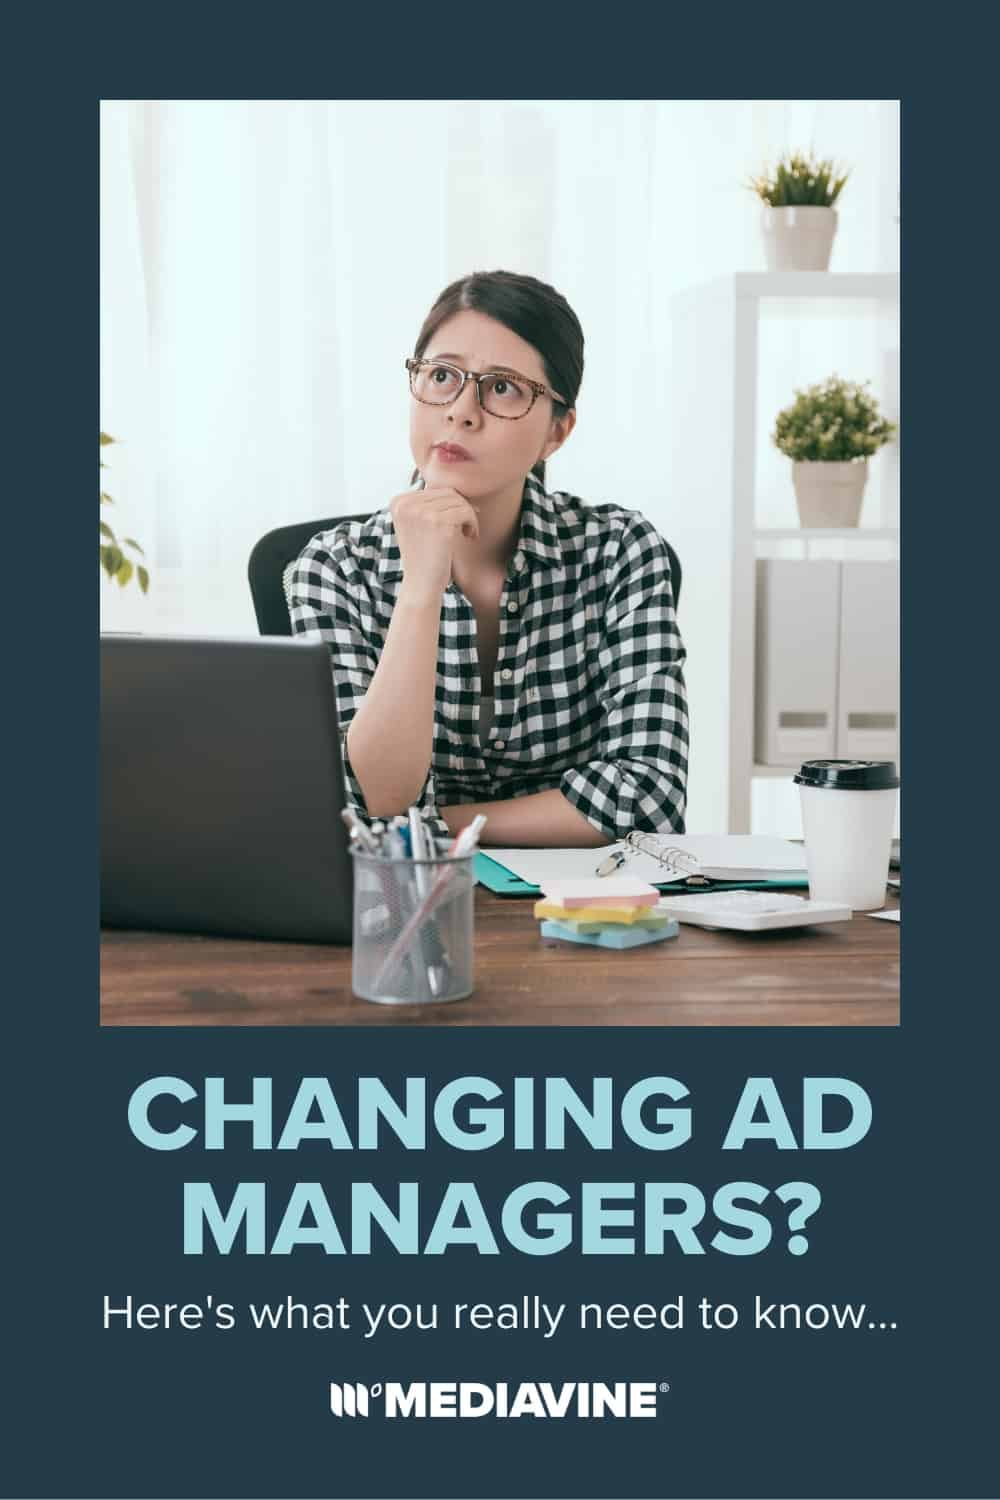 Mediavine Pinterest image - Changing ad managers? Here's what you really need to know...